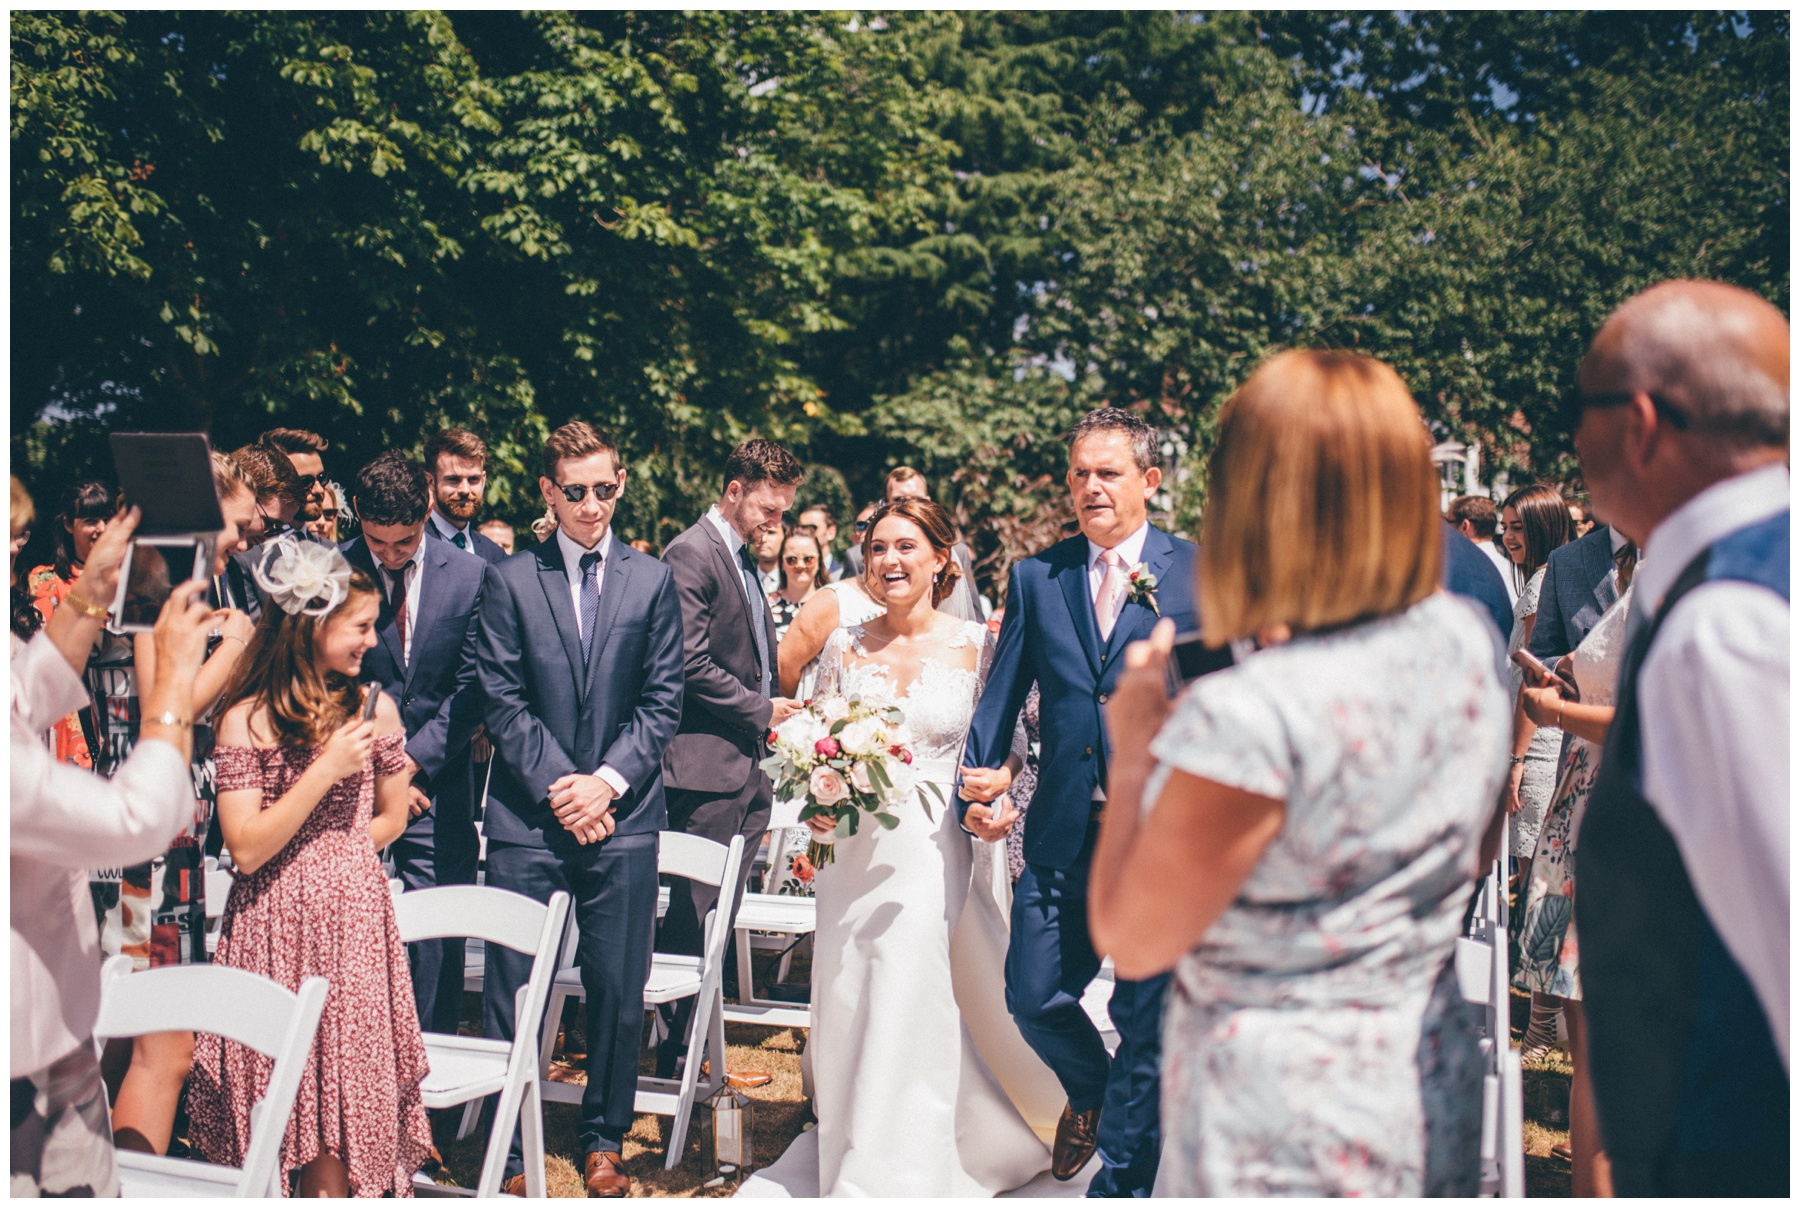 Bride walks down the aisle with her Dad at her outdoor wedding ceremony at Tilstone House.